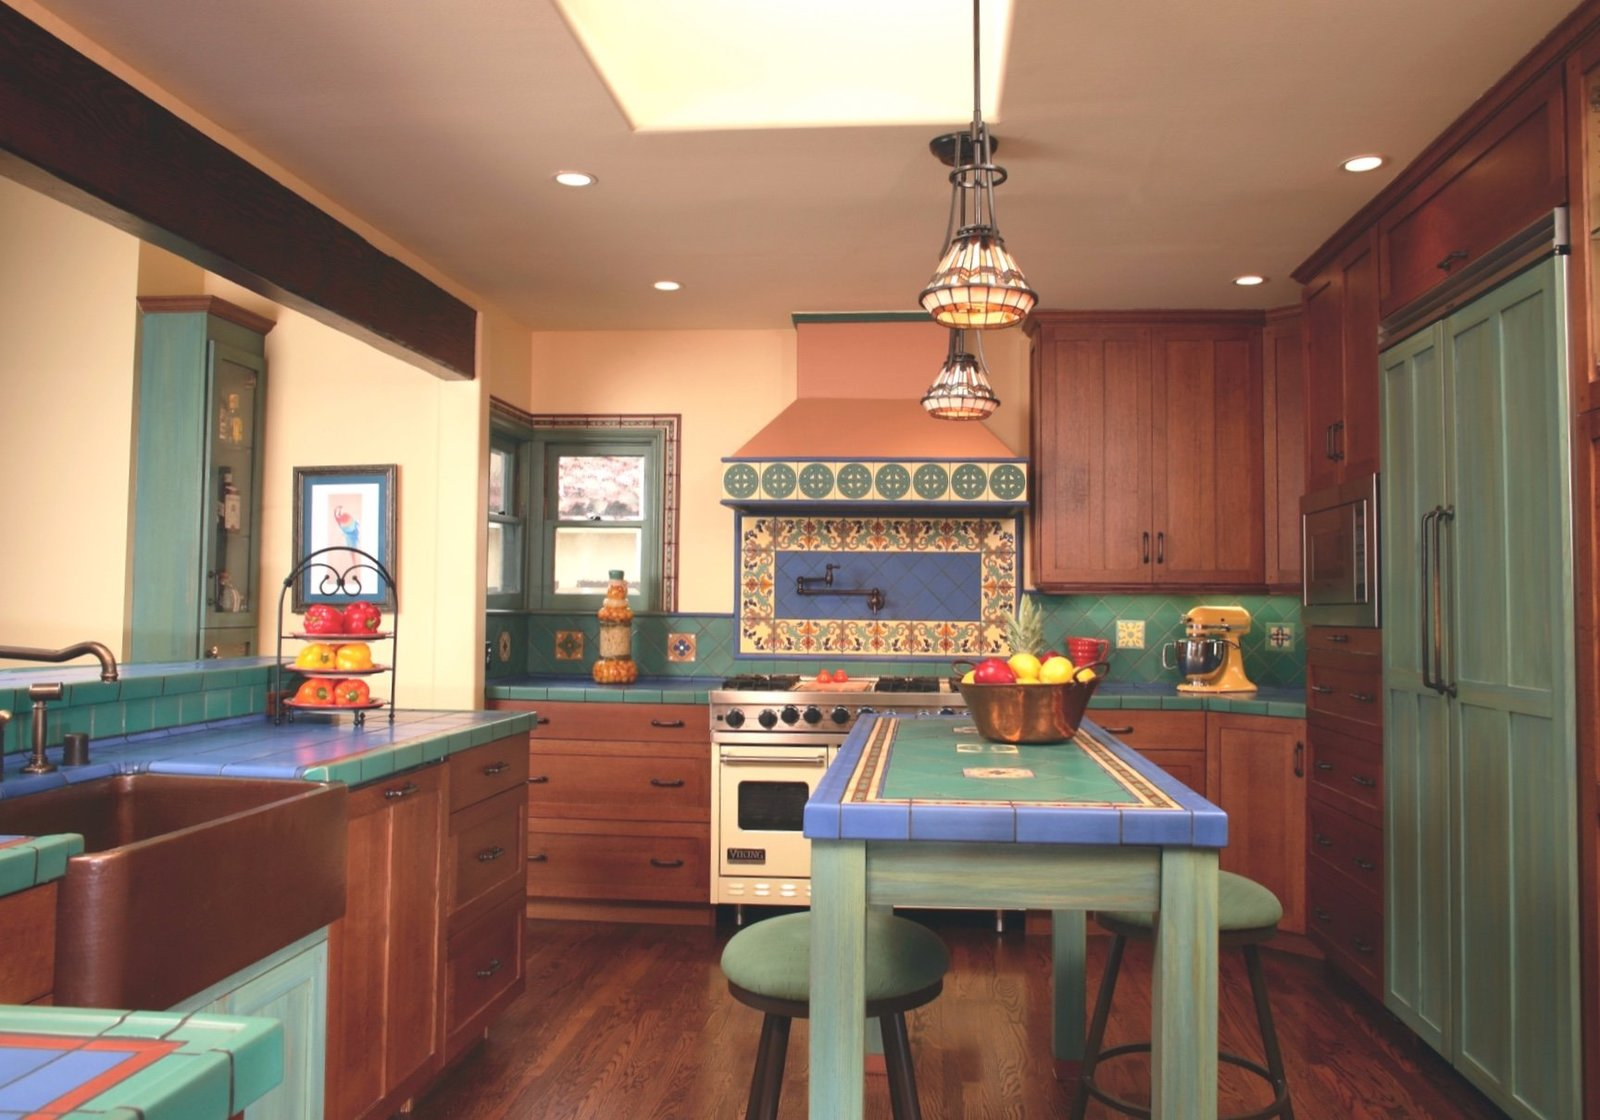 Sante Fe Artist's Colorful Kitchen